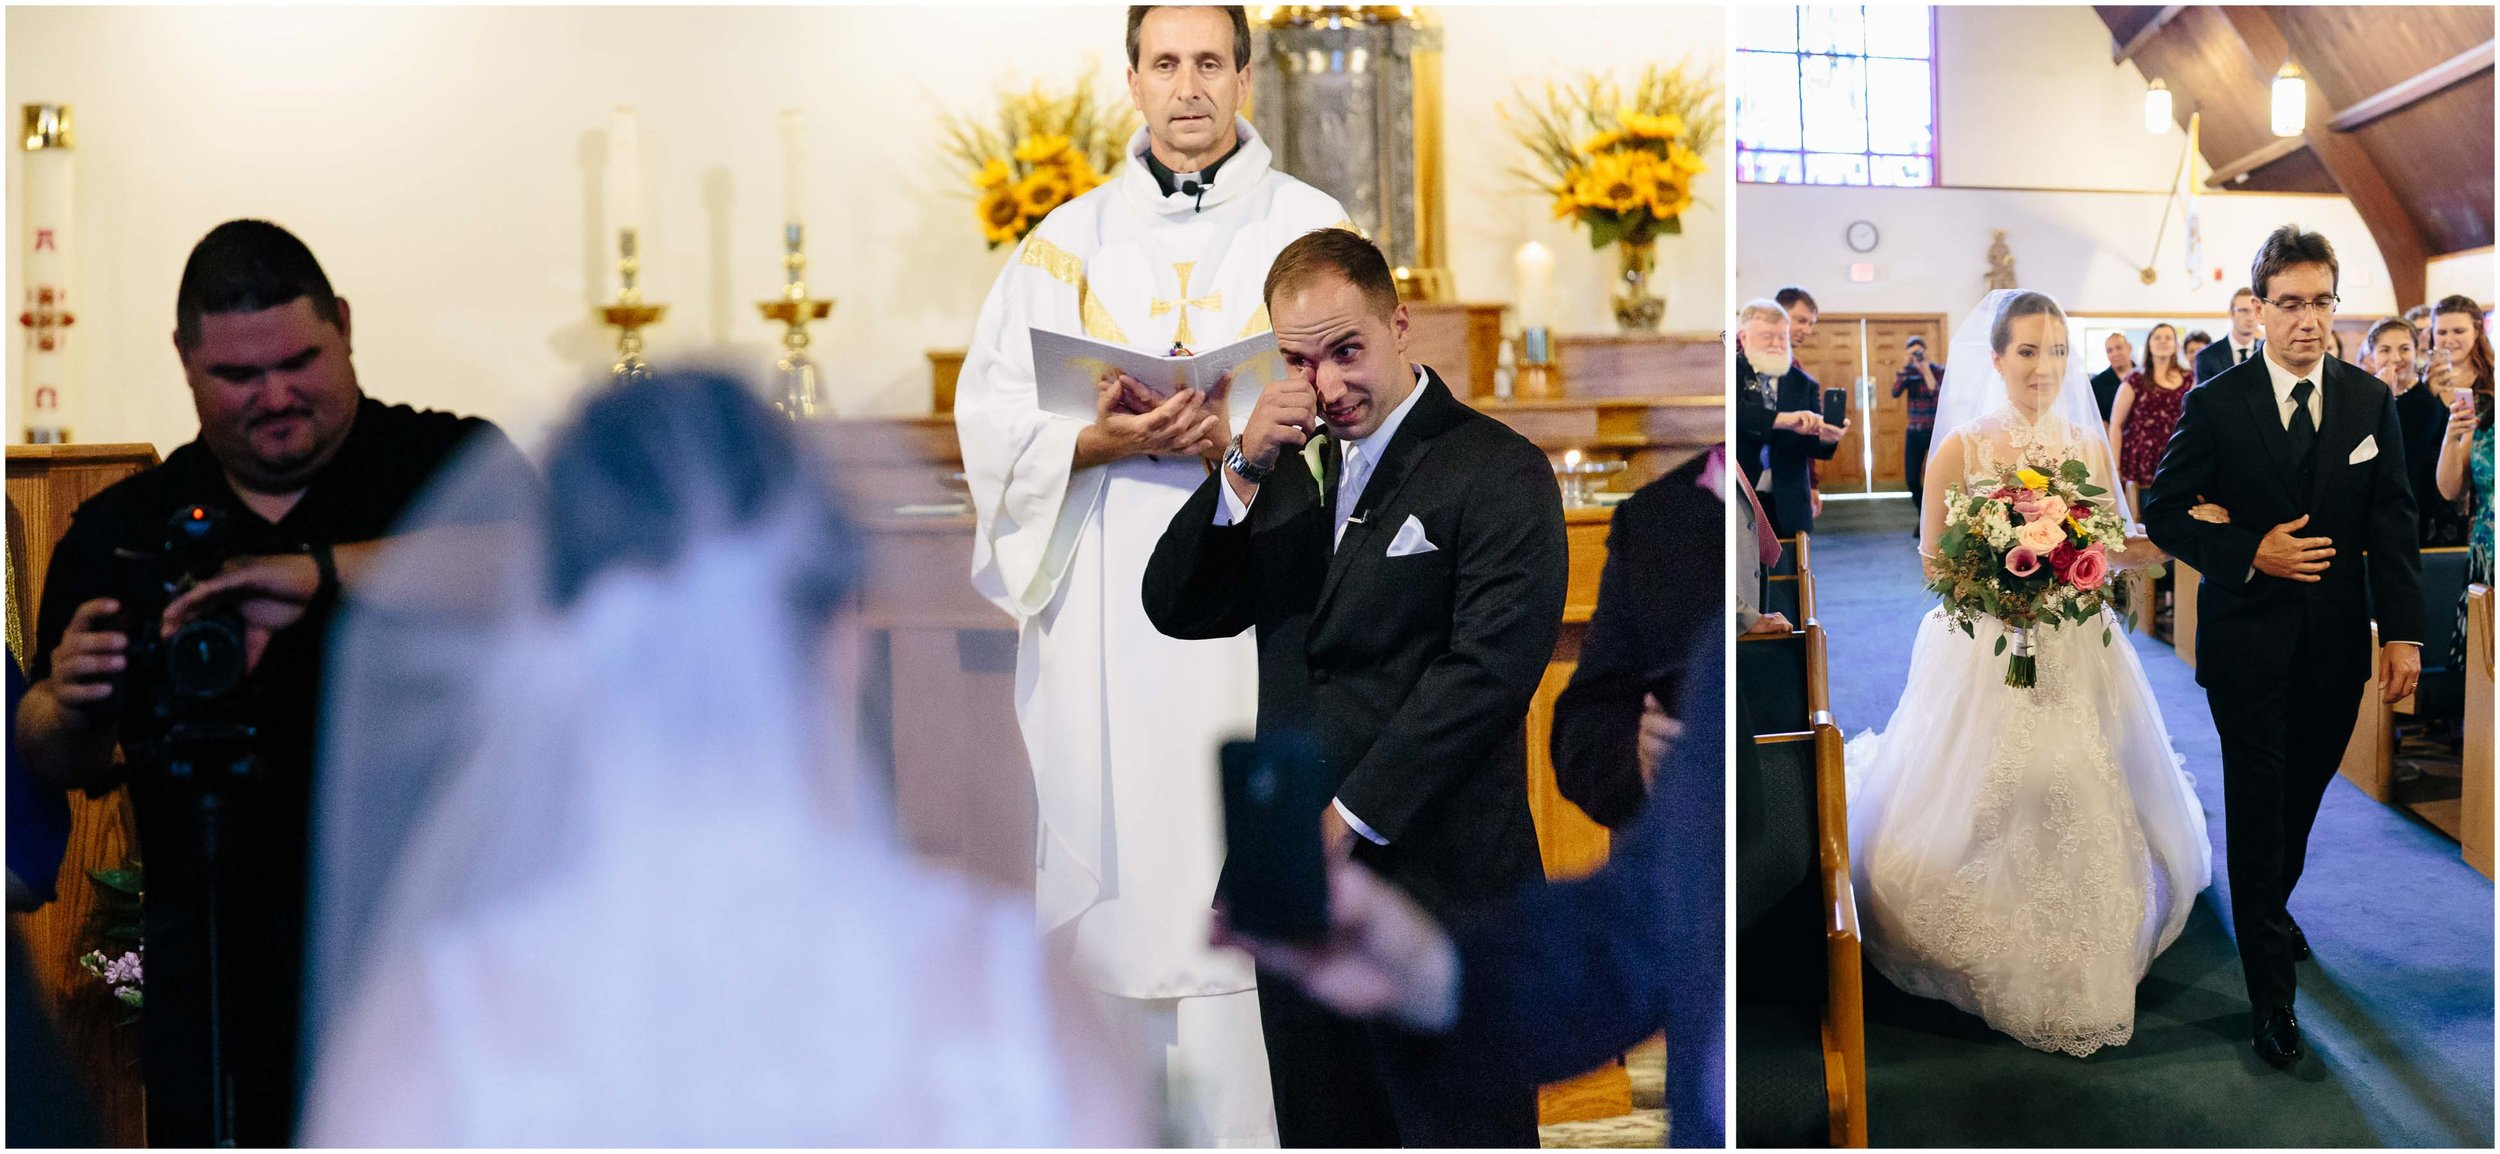 Chic New Hampshire Wedding at Manchester Country Club Bedford - emotional groom and bride walking down the aisle